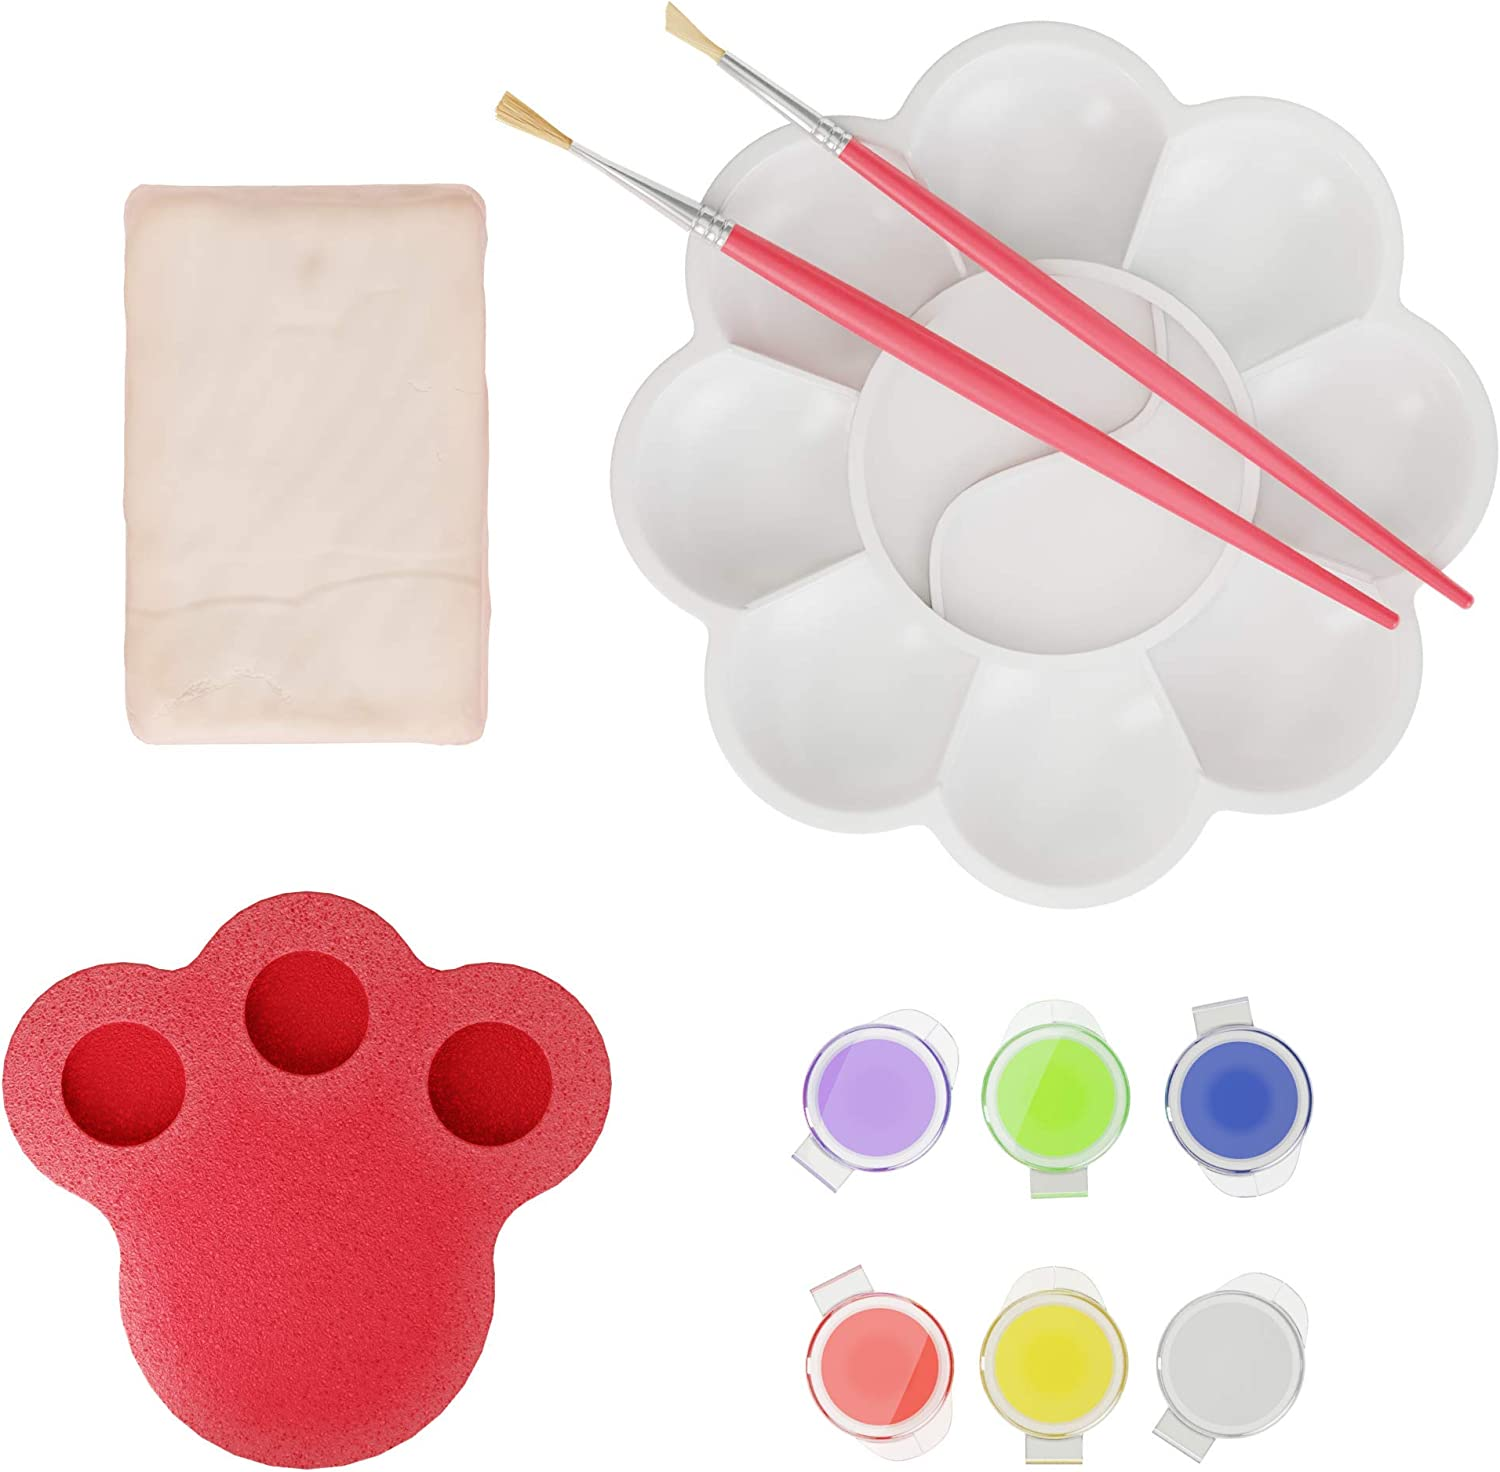 2 Paintbrushes Sponge 6 Color Vials Kids Pottery Clay Set Paint Palette Instruction Guide Air-Dry Clay Dan/&Darci Pottery Studio Refill Kit Includes: 1 Lb Works with All Brands